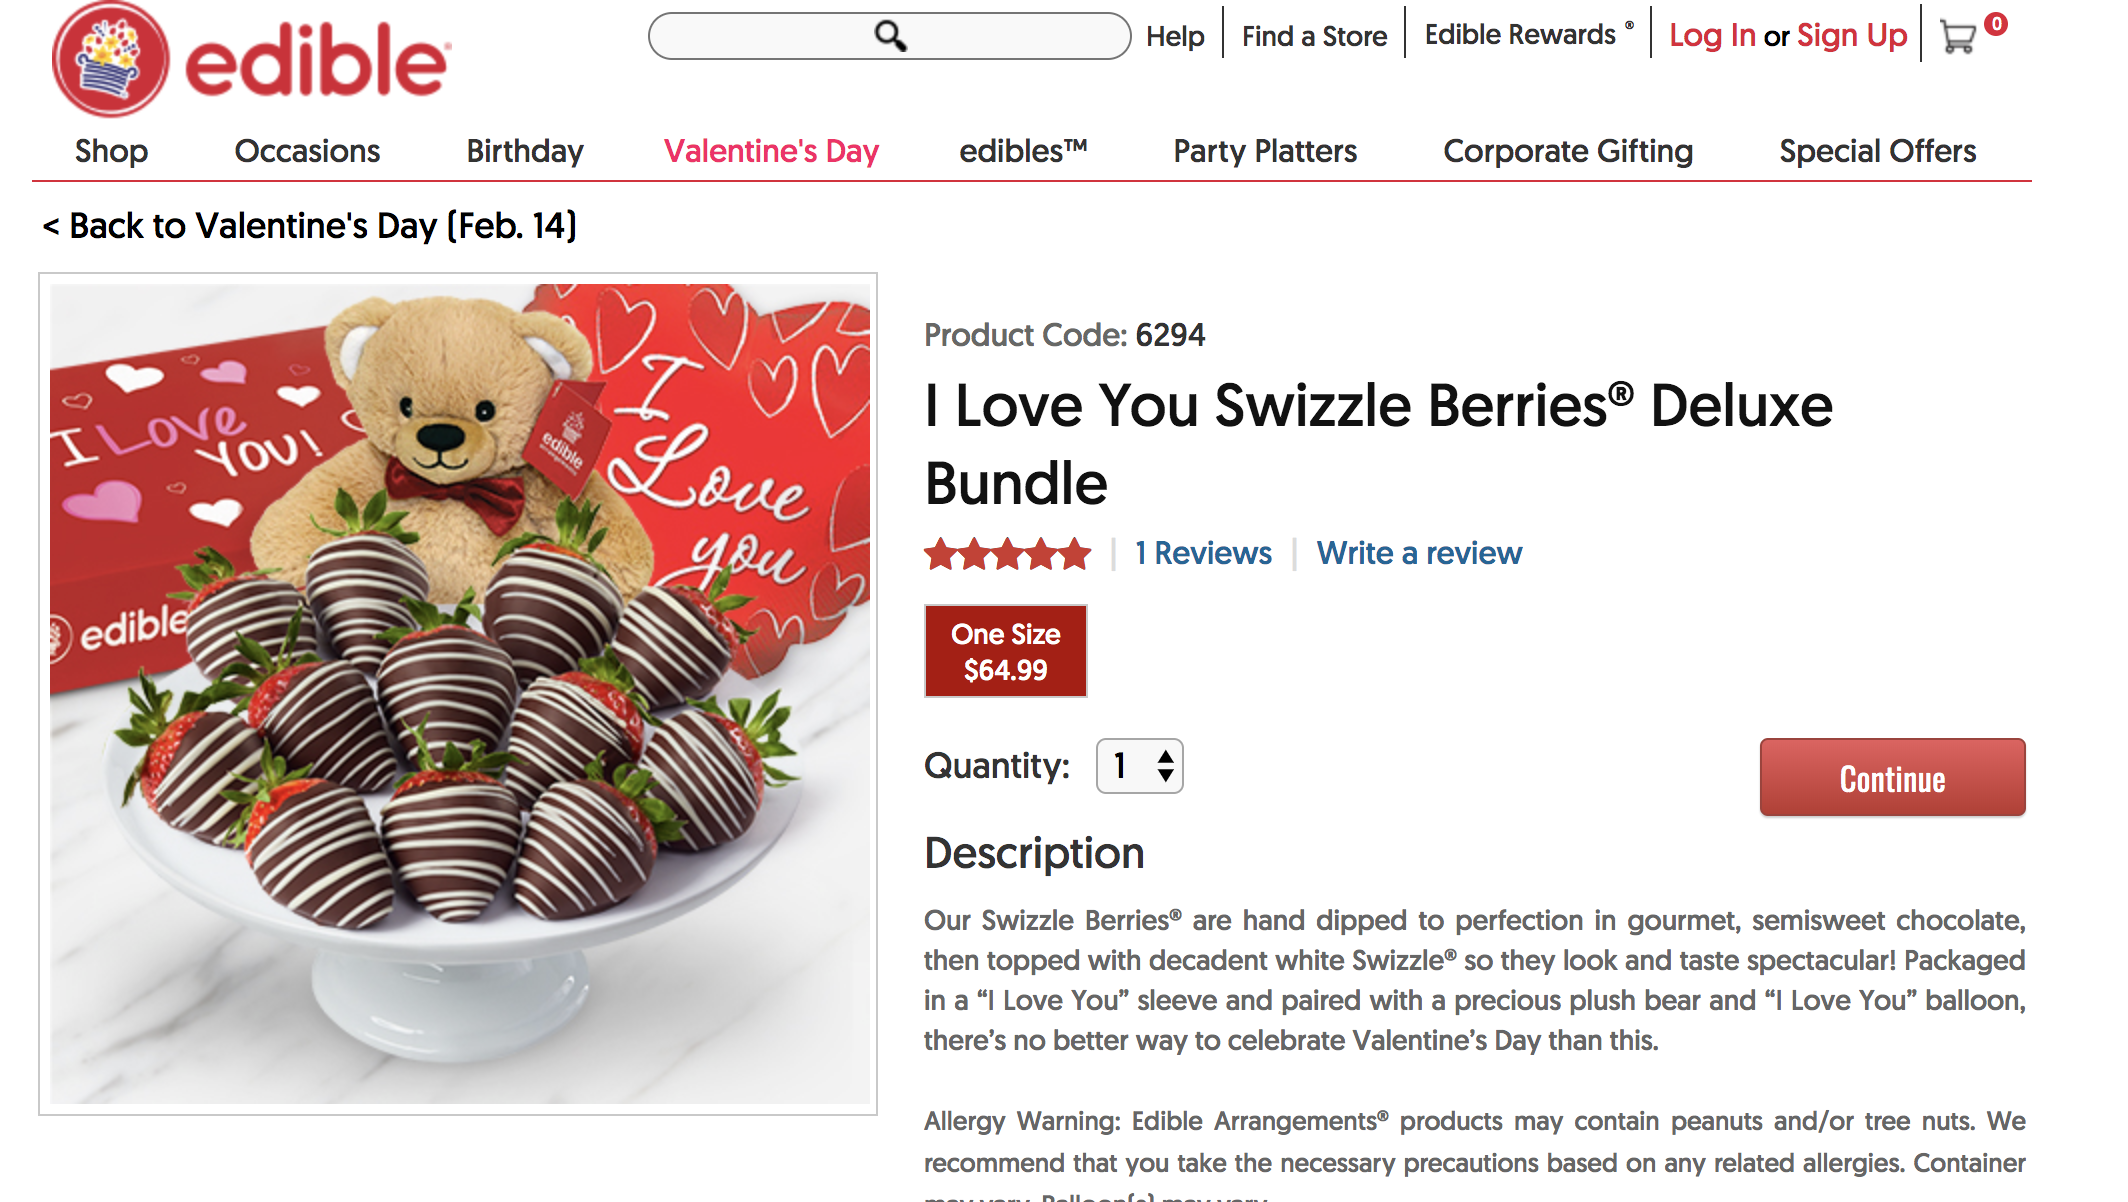 Edible Arrangements Valentines Gift Ideas - Chocolate Covered Strawberries and Bear